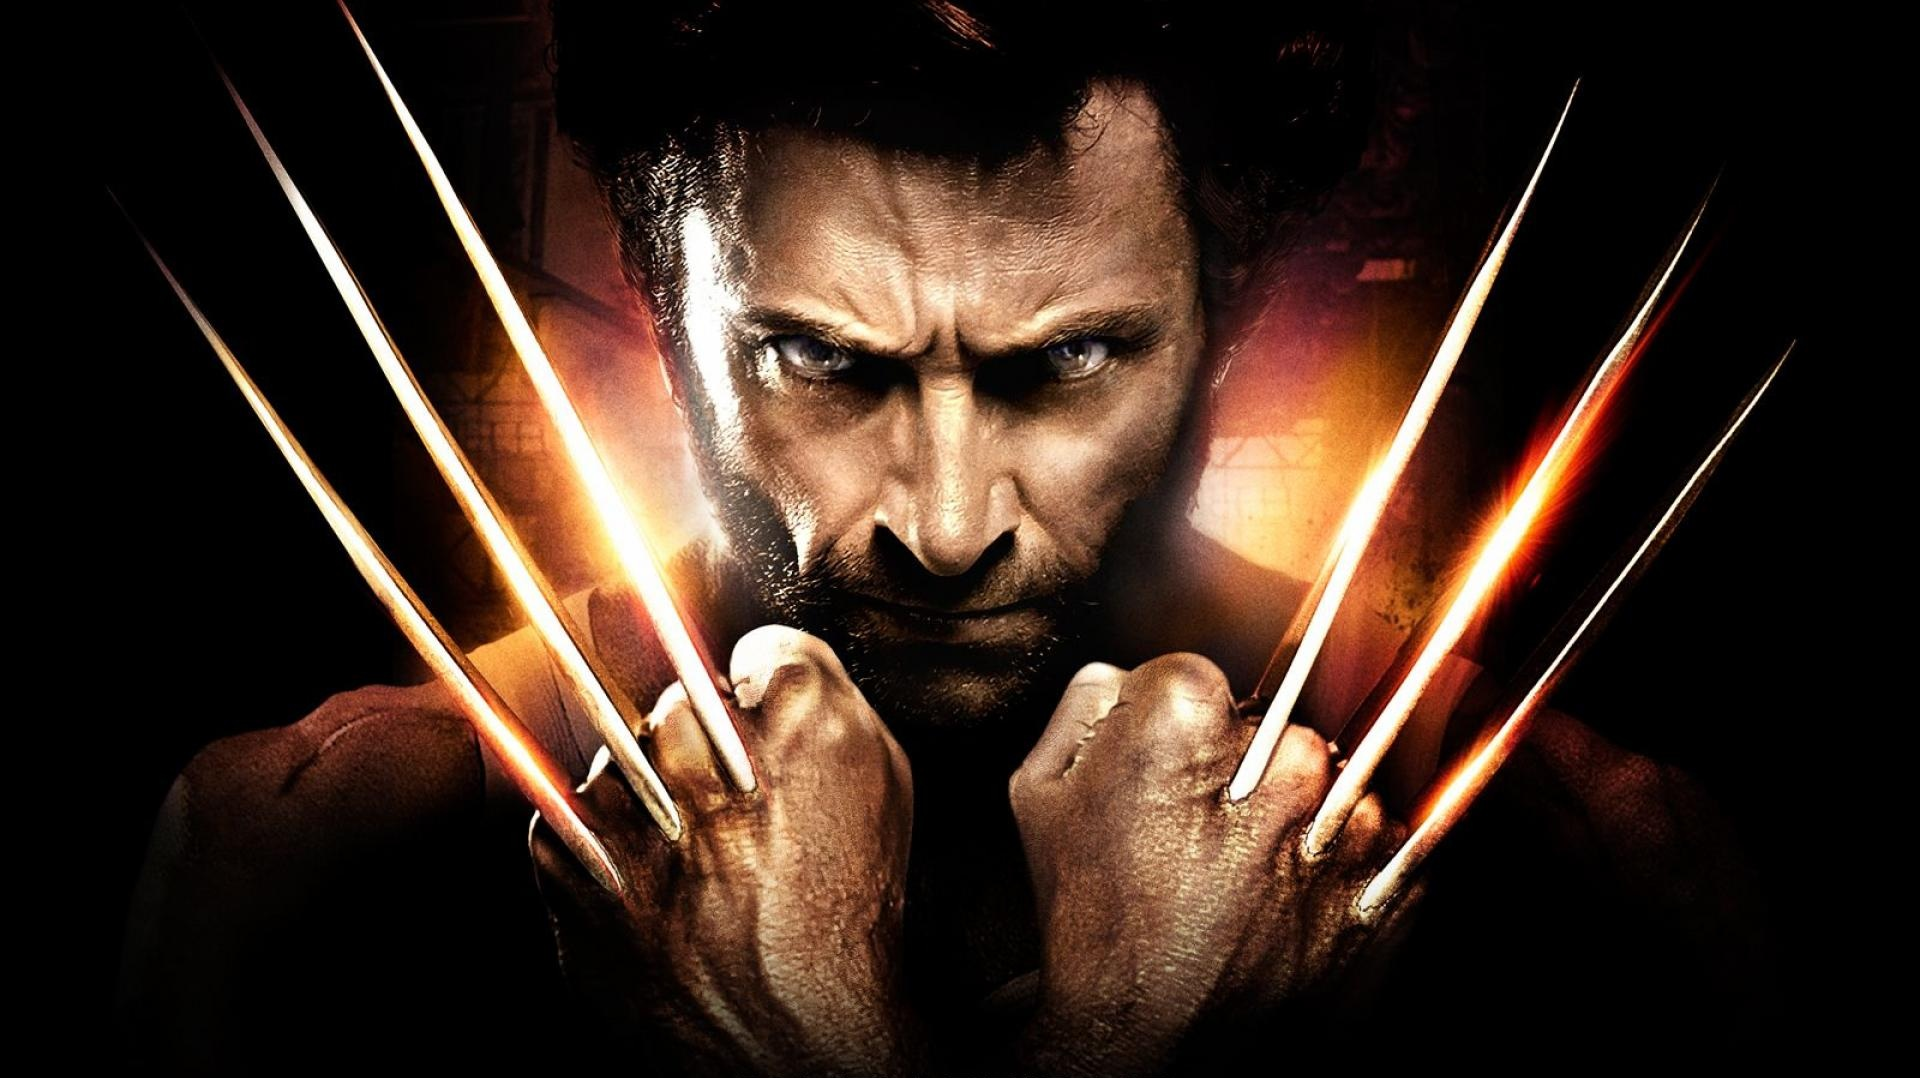 Wolverine's best movie moments